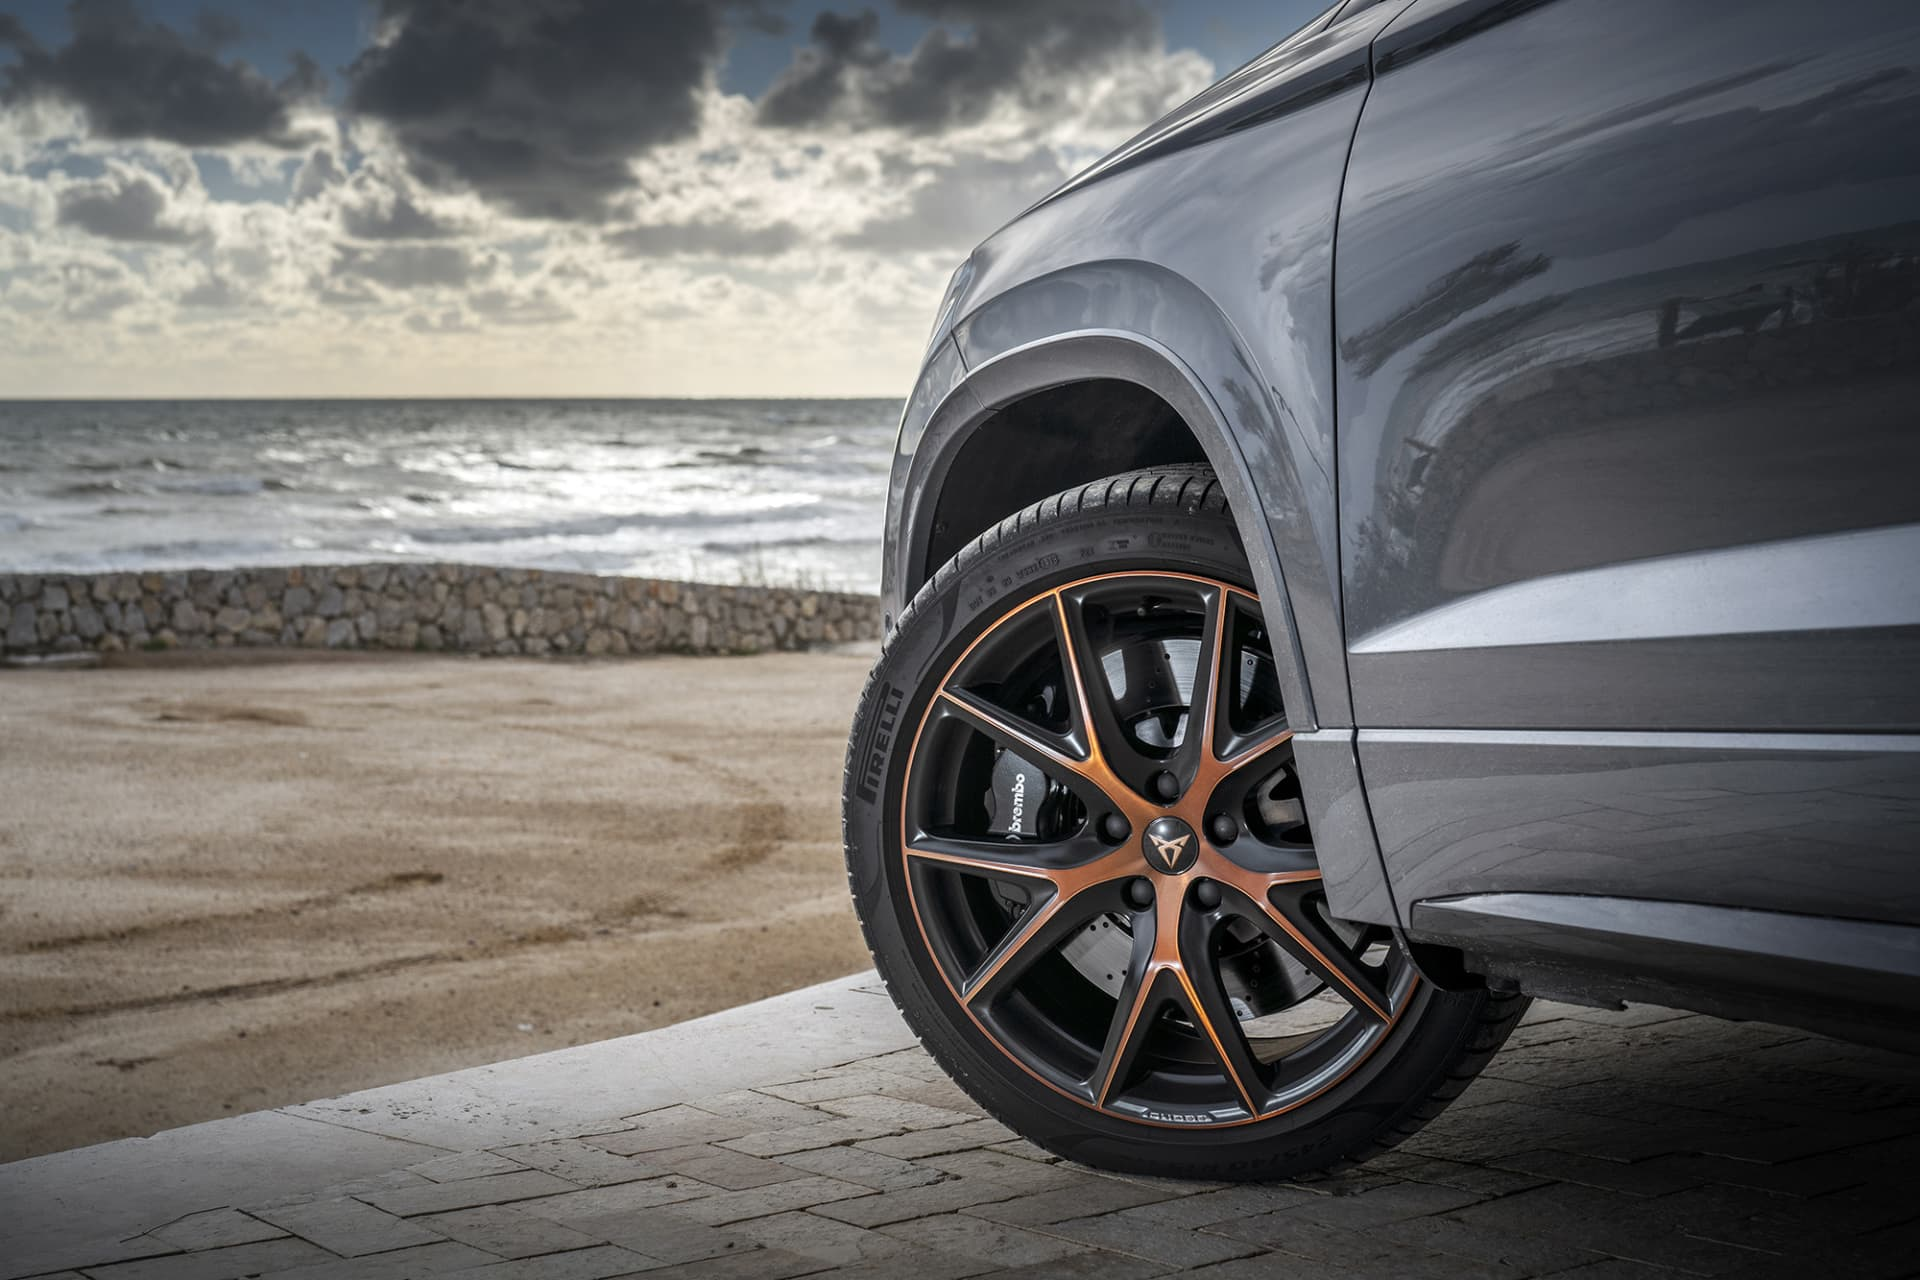 The Brembo brakes that Cupra Ateca comes equipped with do a great job when it comes to reducing speed.